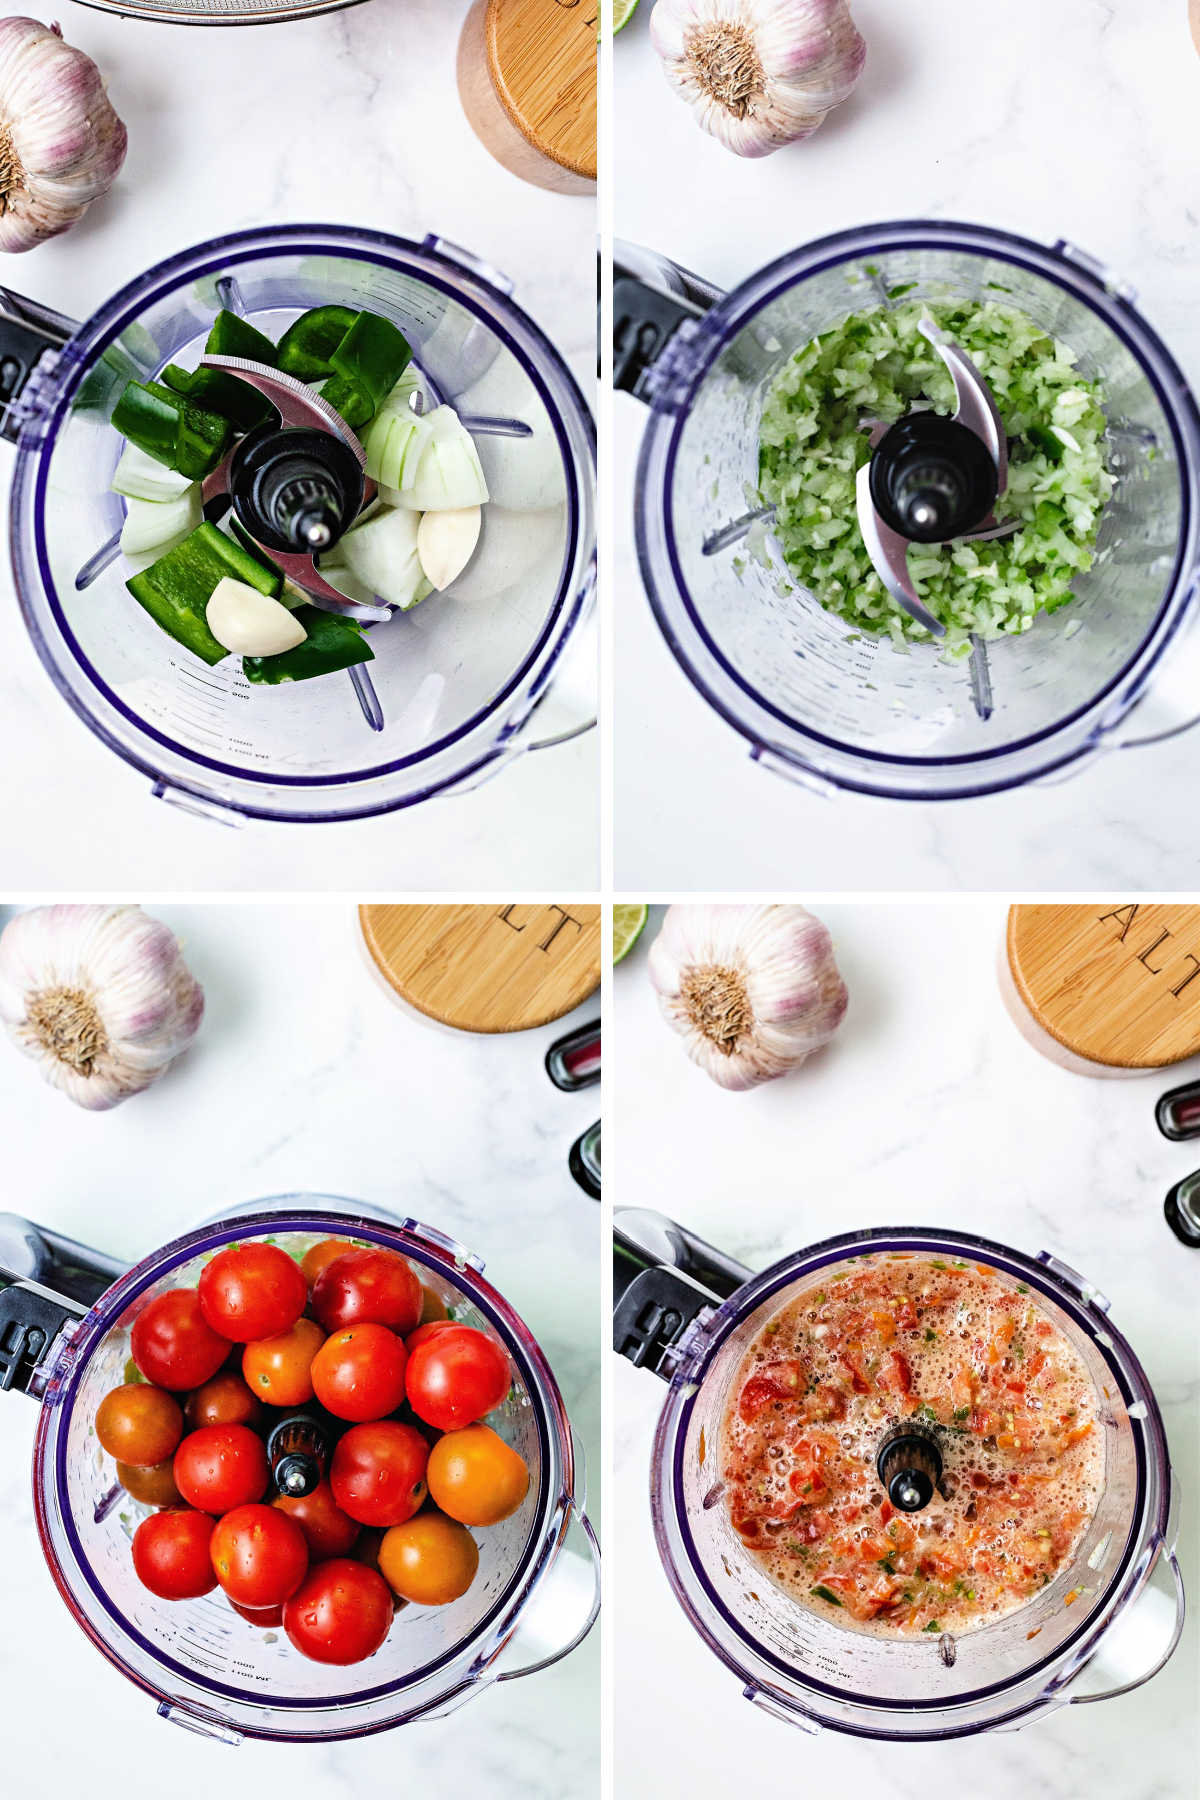 process steps for chopping vegetables for salsa: add onion, garlic, and jalapeno to food processor; chop fine; add cherry tomatoes; pulse until chopped and blended.